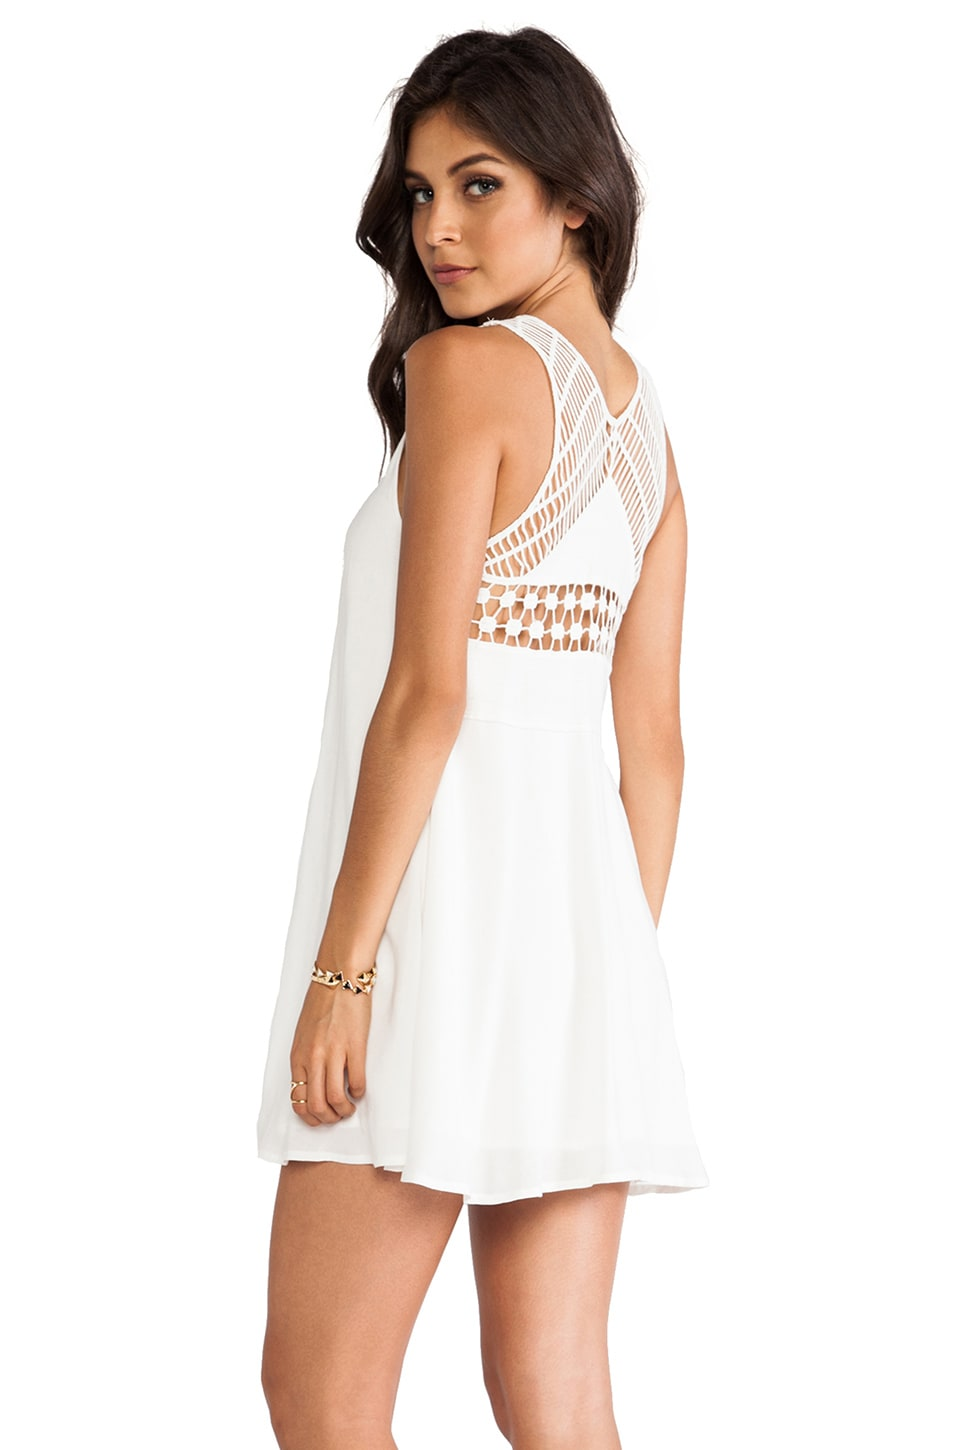 Ladakh Seaside Macrame Dress in White